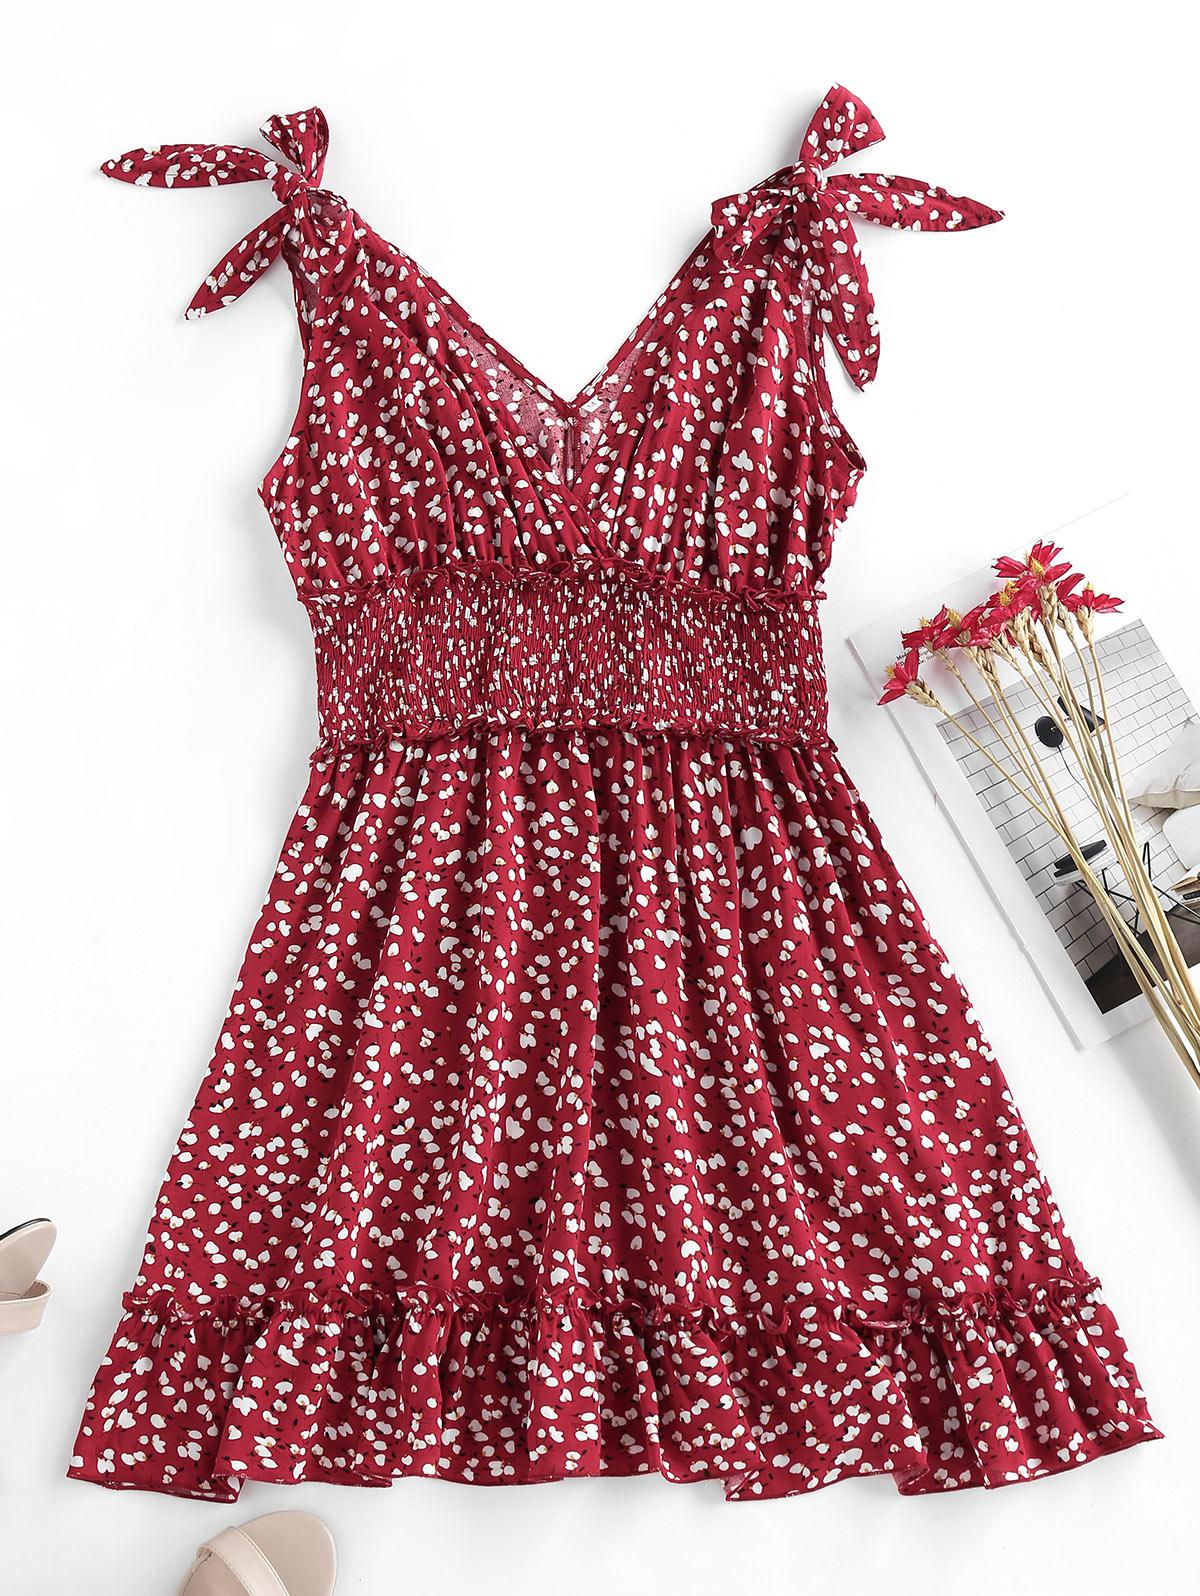 ZAFUL Flower Smocked Ruffle Tie Shoulder Dress